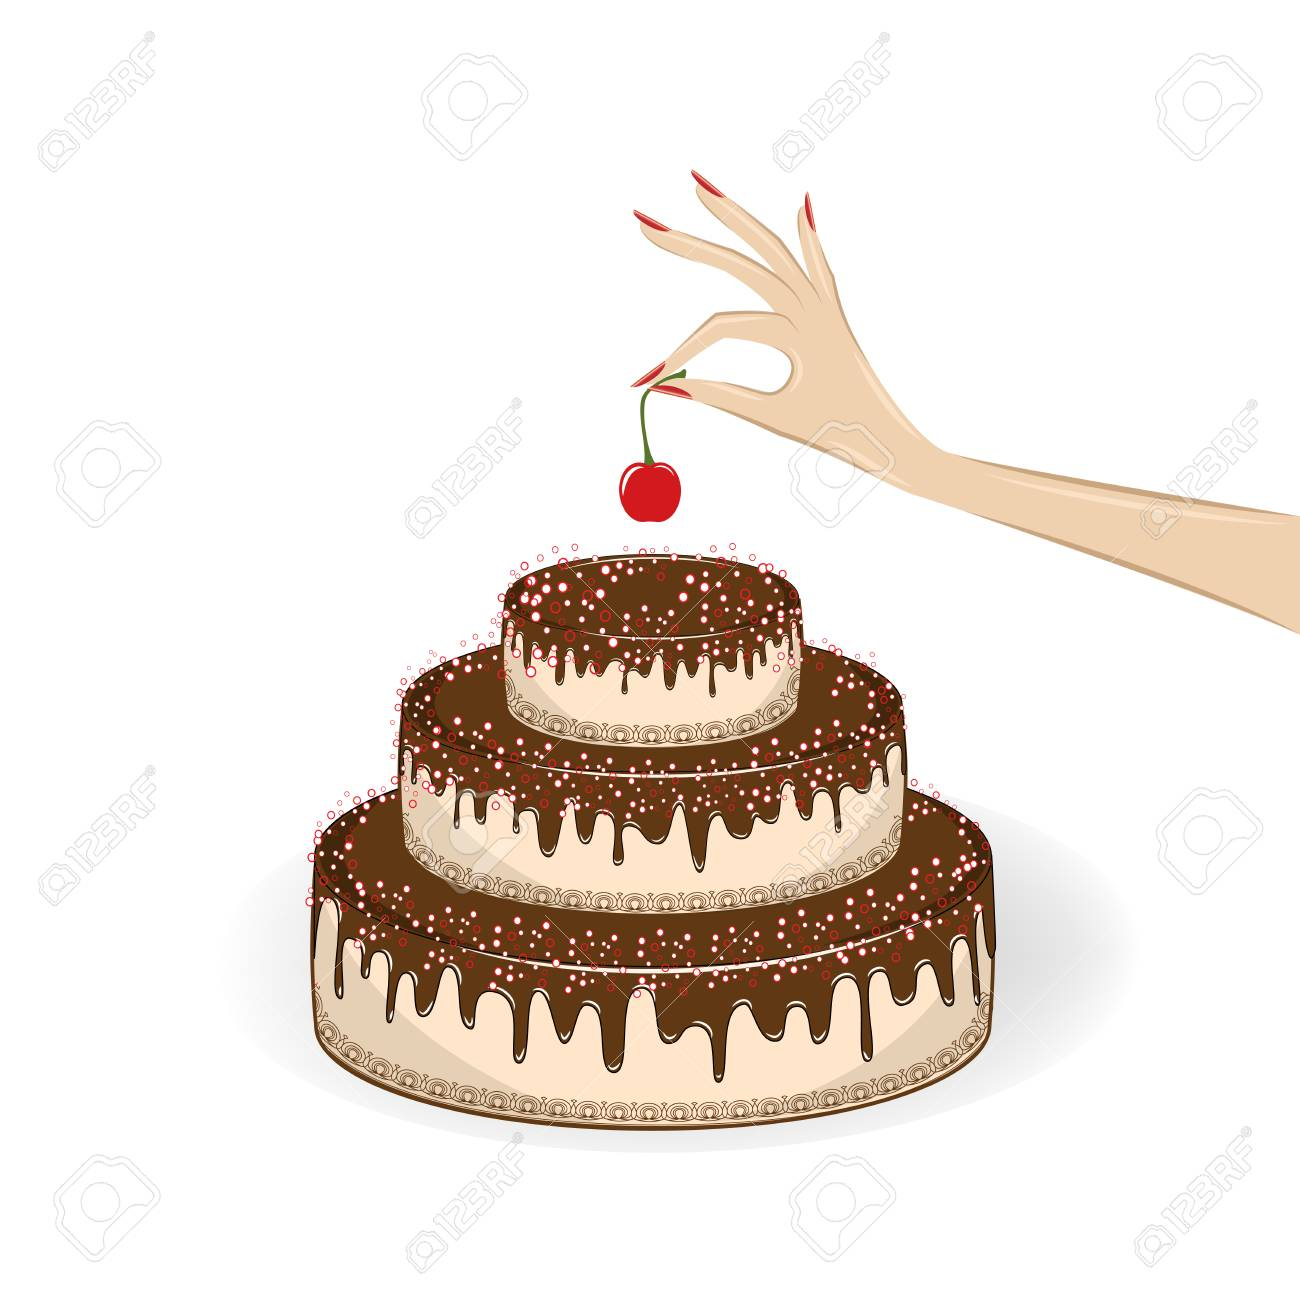 Womans Hand Puts A Cherry On Top Of A Cake Isolated On The White Royalty Free Cliparts Vectors And Stock Illustration Image 119846346